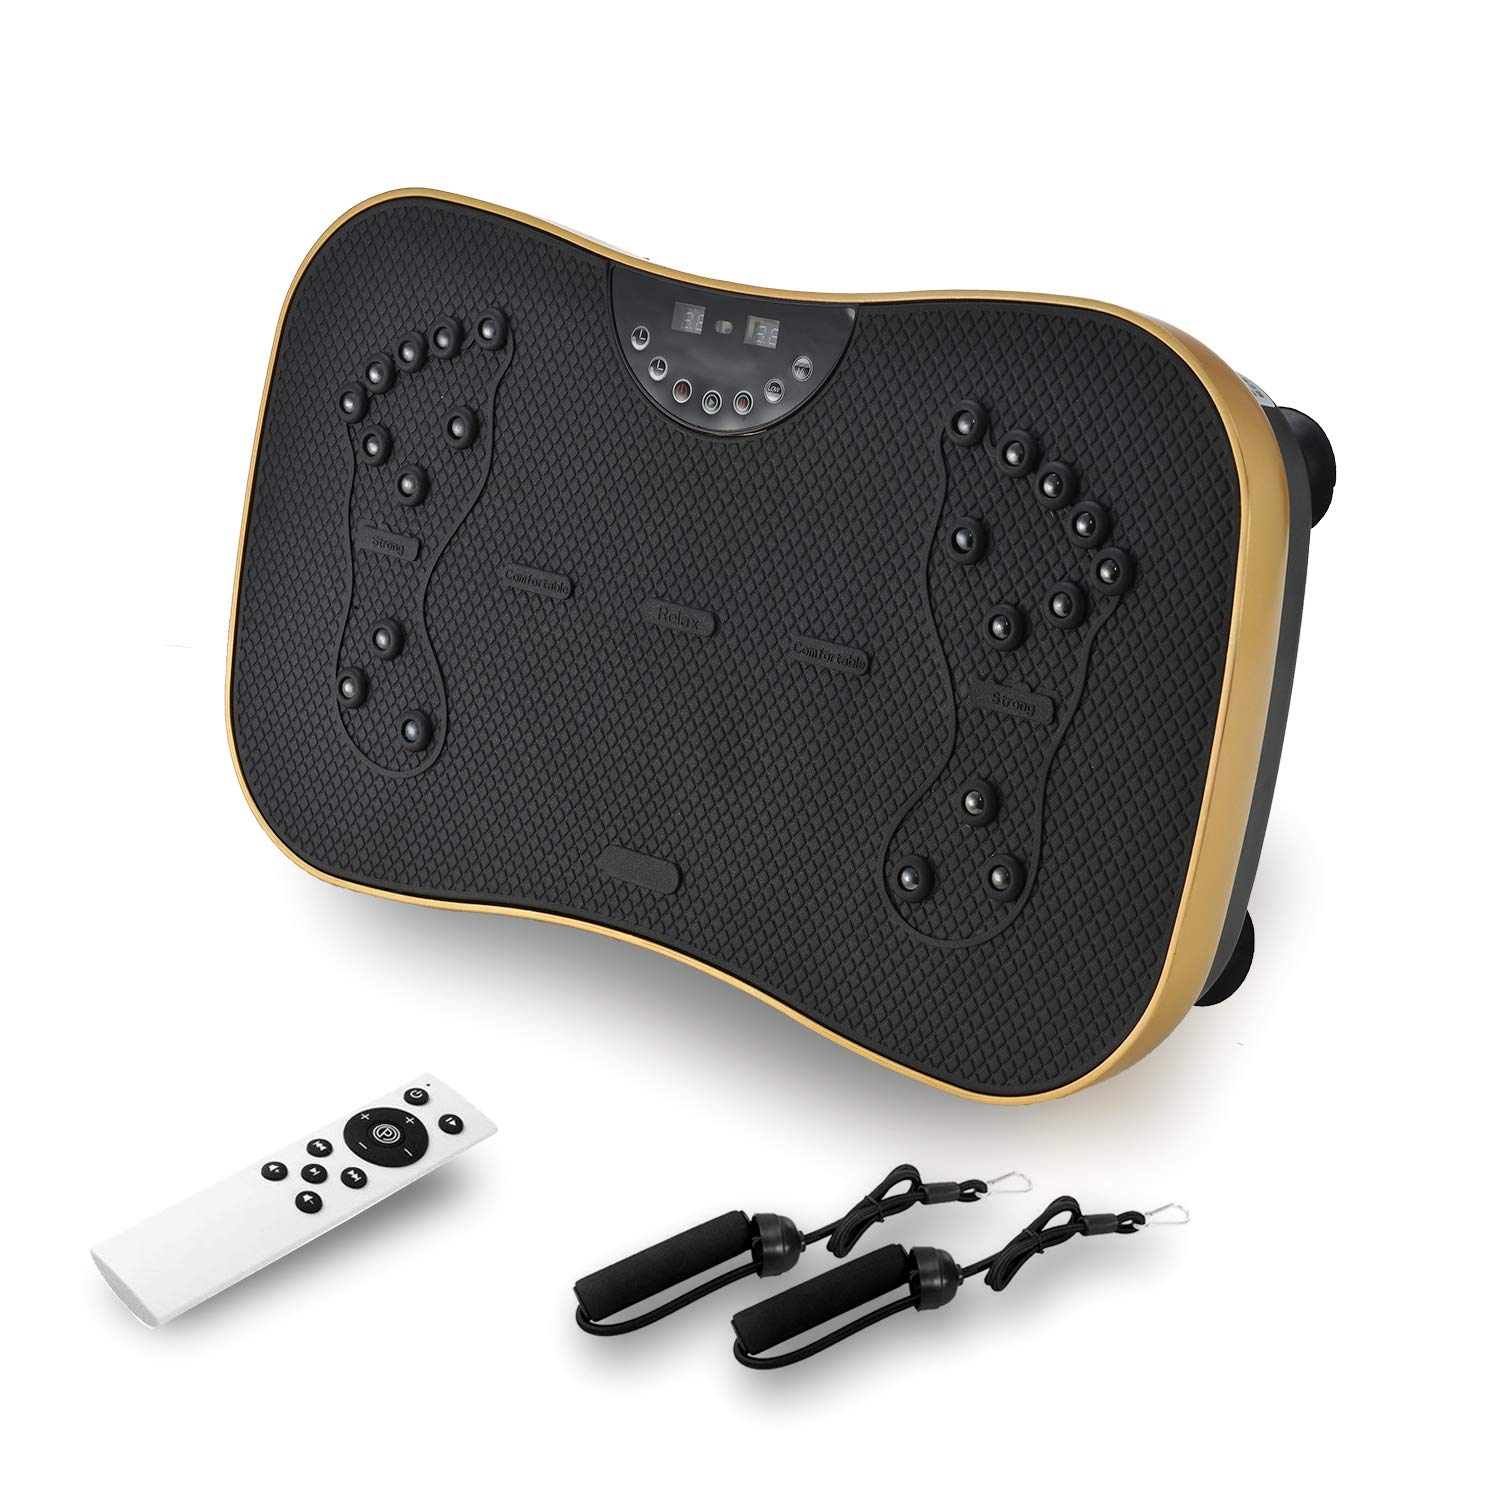 MIRUIKE Fitness Vibration Platform, Vibration Plate Whlie Body Shaking Oscillating Platform,with Remote Control & Two Resistance Bands